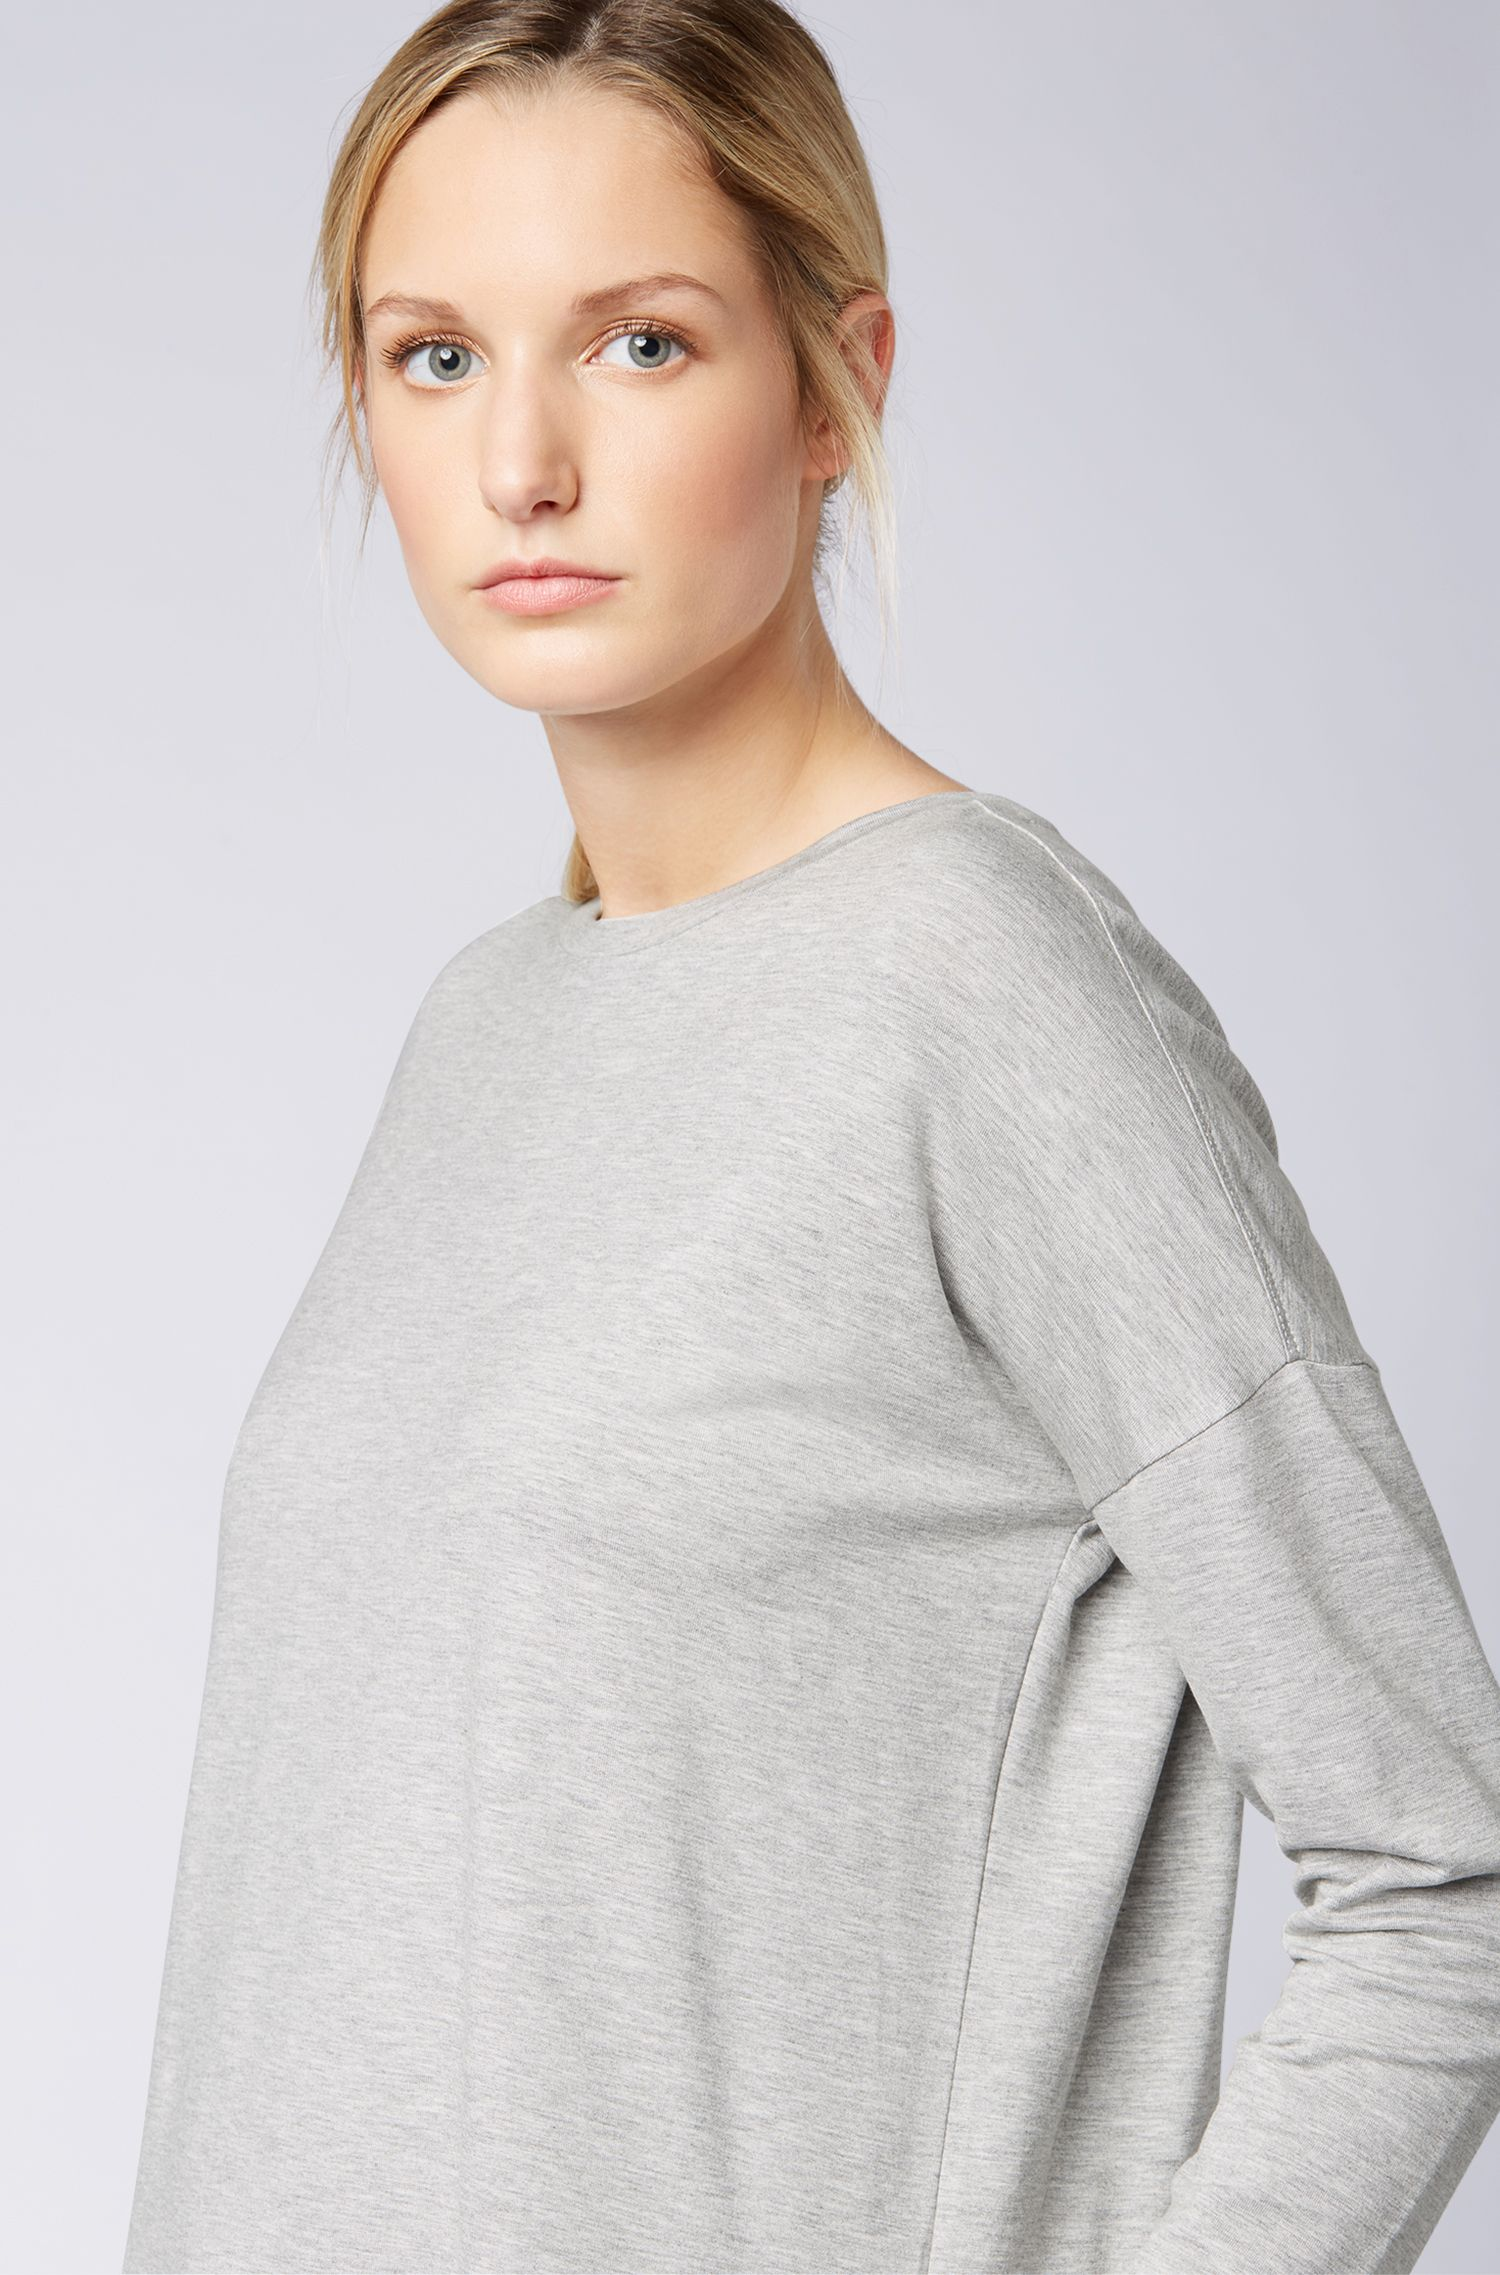 Boxy-fit top in lightweight stretch terry, Silver